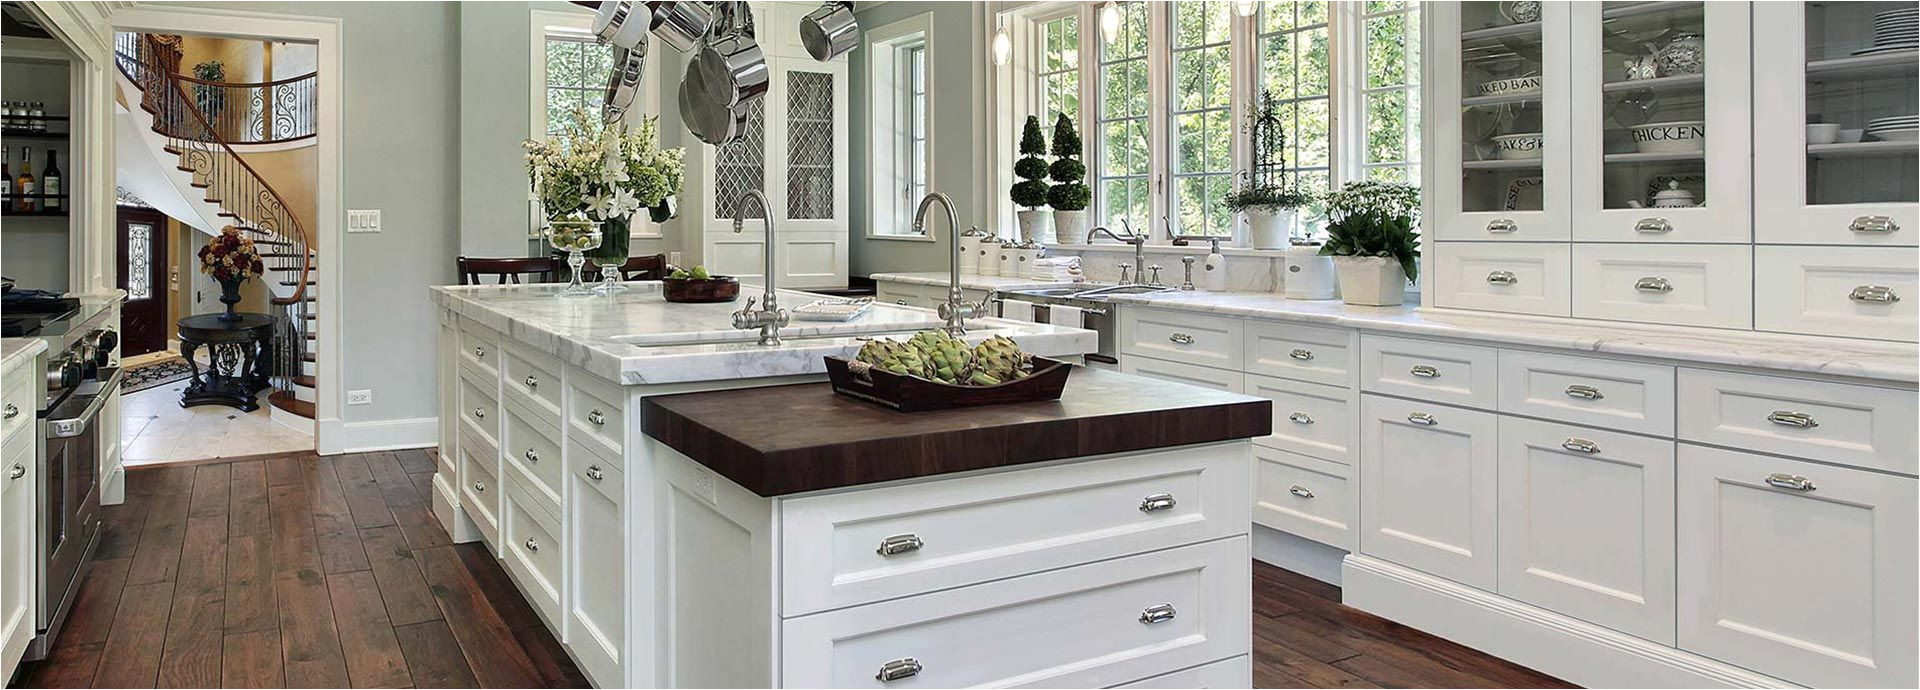 1250 best great kitchens images in 2019 kitchen cabinets kitchen cupboards bathroom cabinets